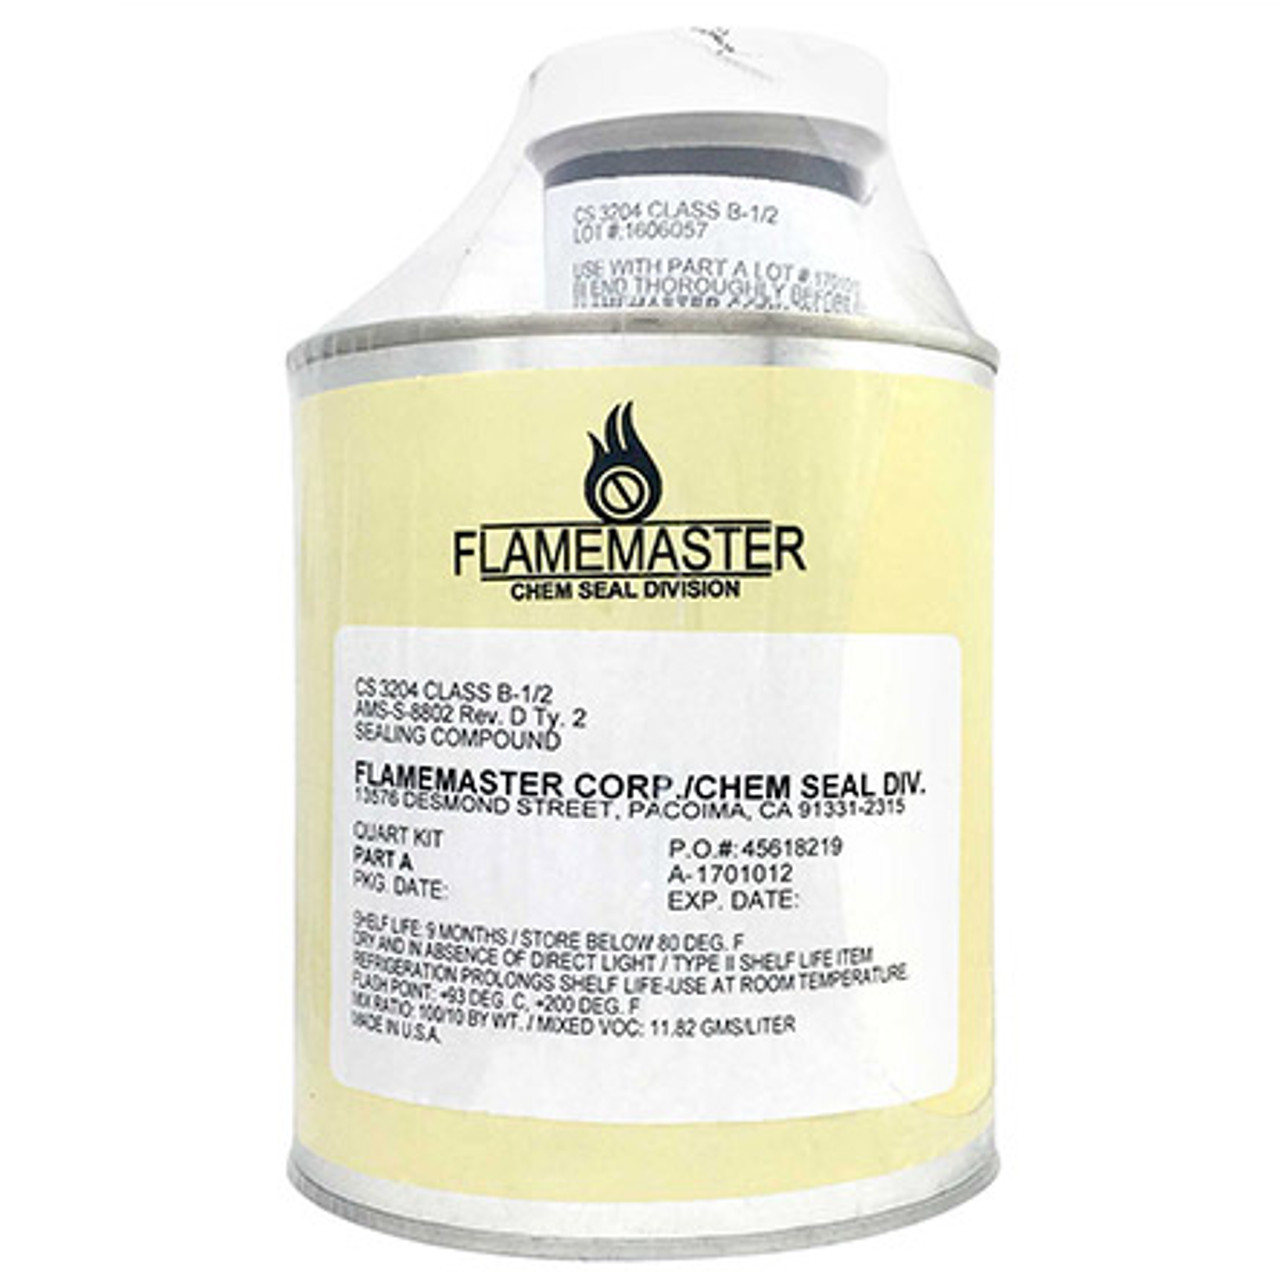 Flamemaster Sealant: A/B,Gry,Qt, / CS3330B2PT  Integral Fuel Tank Sealant - Meets AMS-S-8802, Type II, Class B 1/2 Sealant. Designed to withstand the attck of sulfur compounds present in jet fuels. Also used as a pressurized cabin sealant. Alternates with PR-1440, PS1440, PS-890, and MC-236.Type II, Class A 1/2 Sealant.